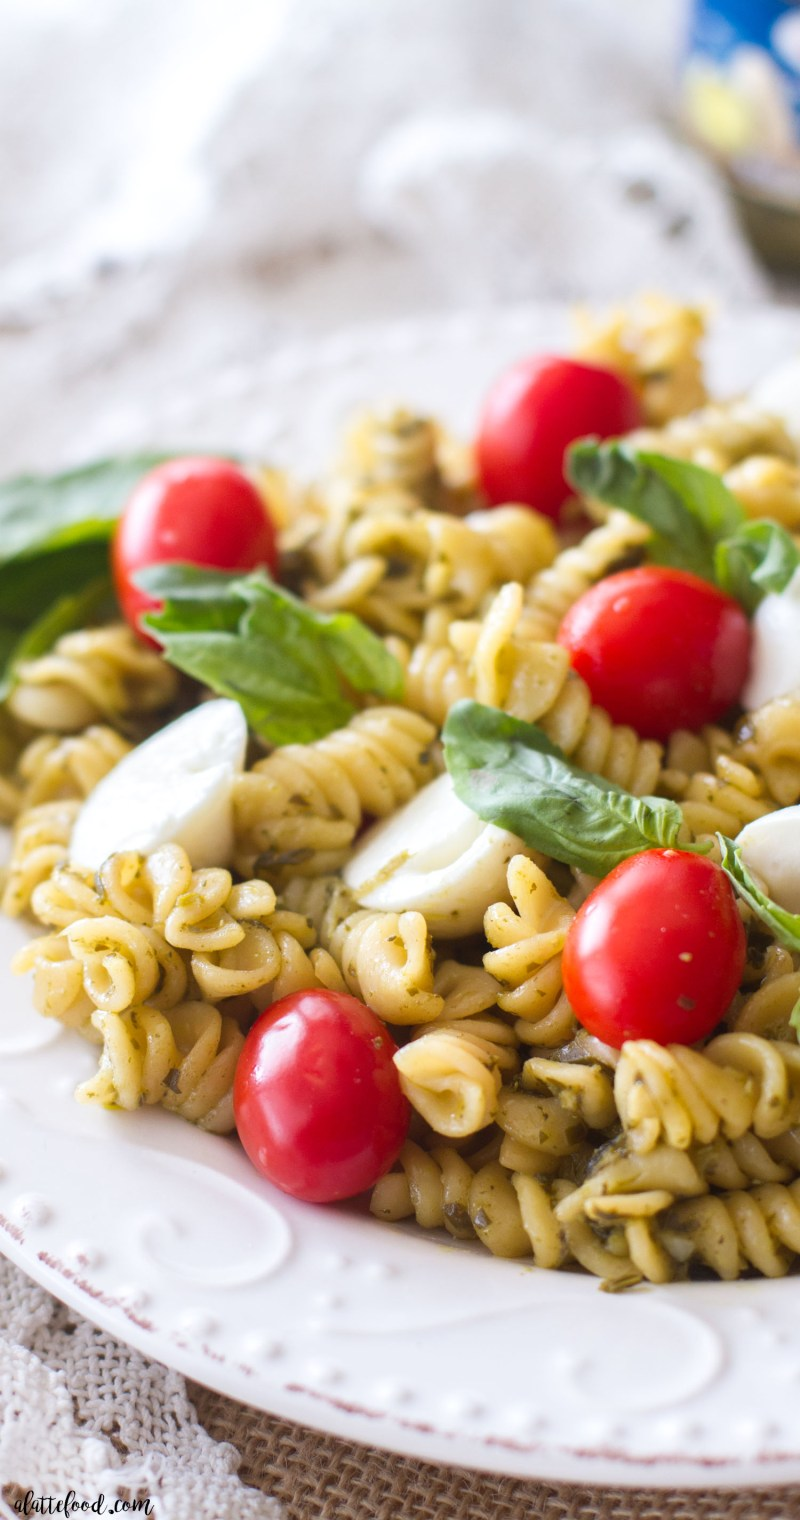 This Caprese Pasta Salad recipe is the perfect summer dish! It's made with only 6-ingredients, can be eaten both warm and/or cold, and comes together in less than 10 minutes. Caprese Pasta Salad is sure to be a new family favorite!